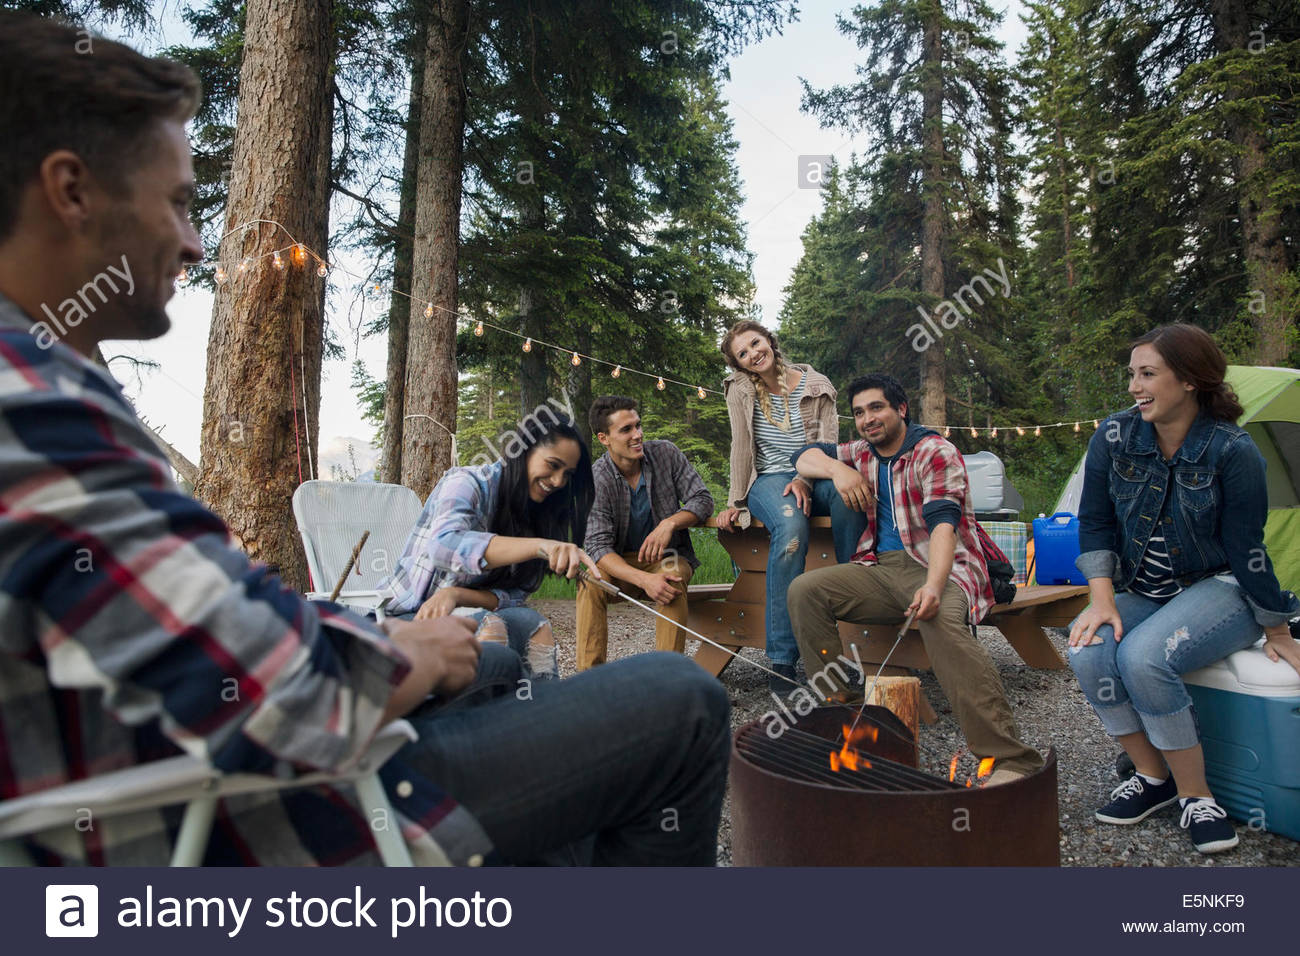 Friends hanging out around campfire at campsite - Stock Image